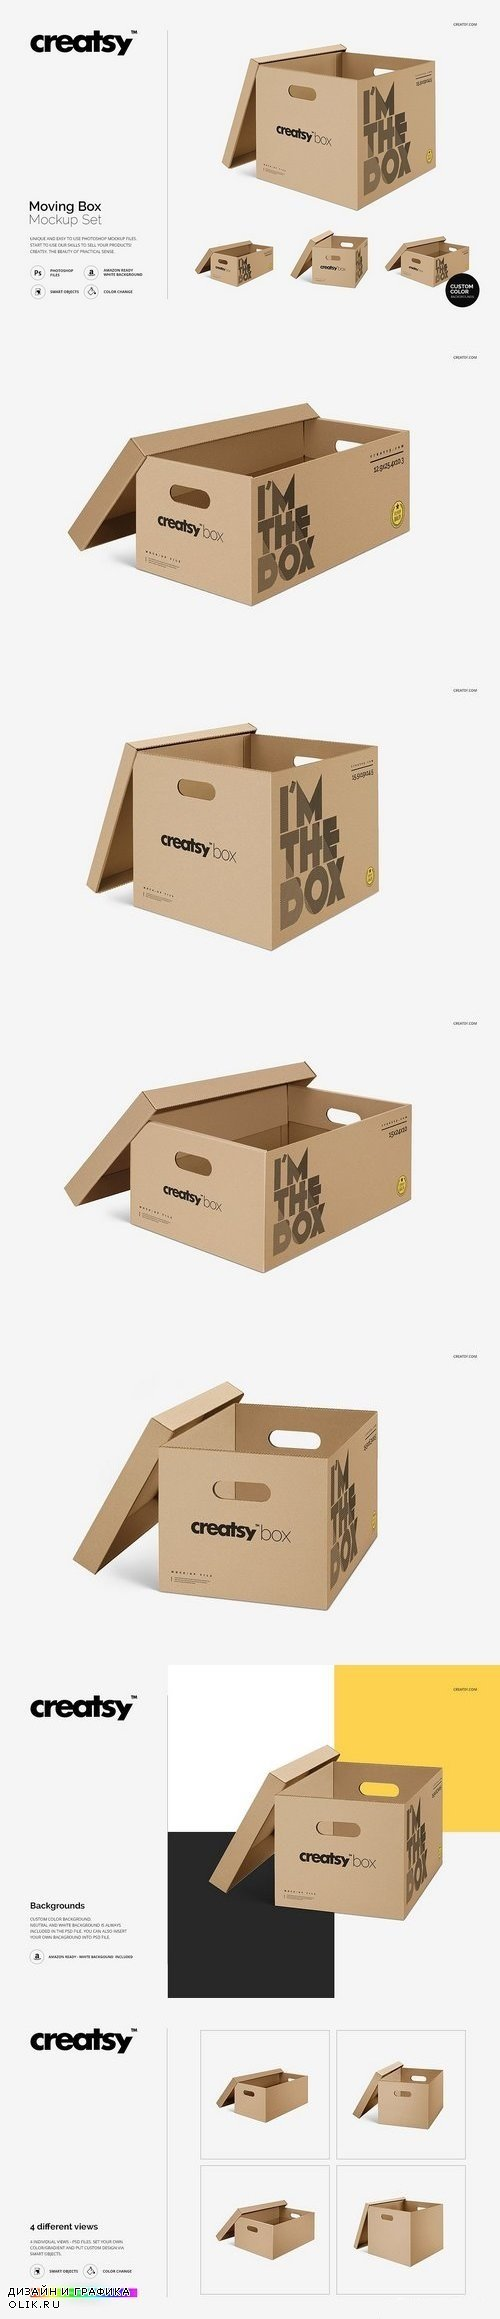 Moving Box Mockup Set - 1379147